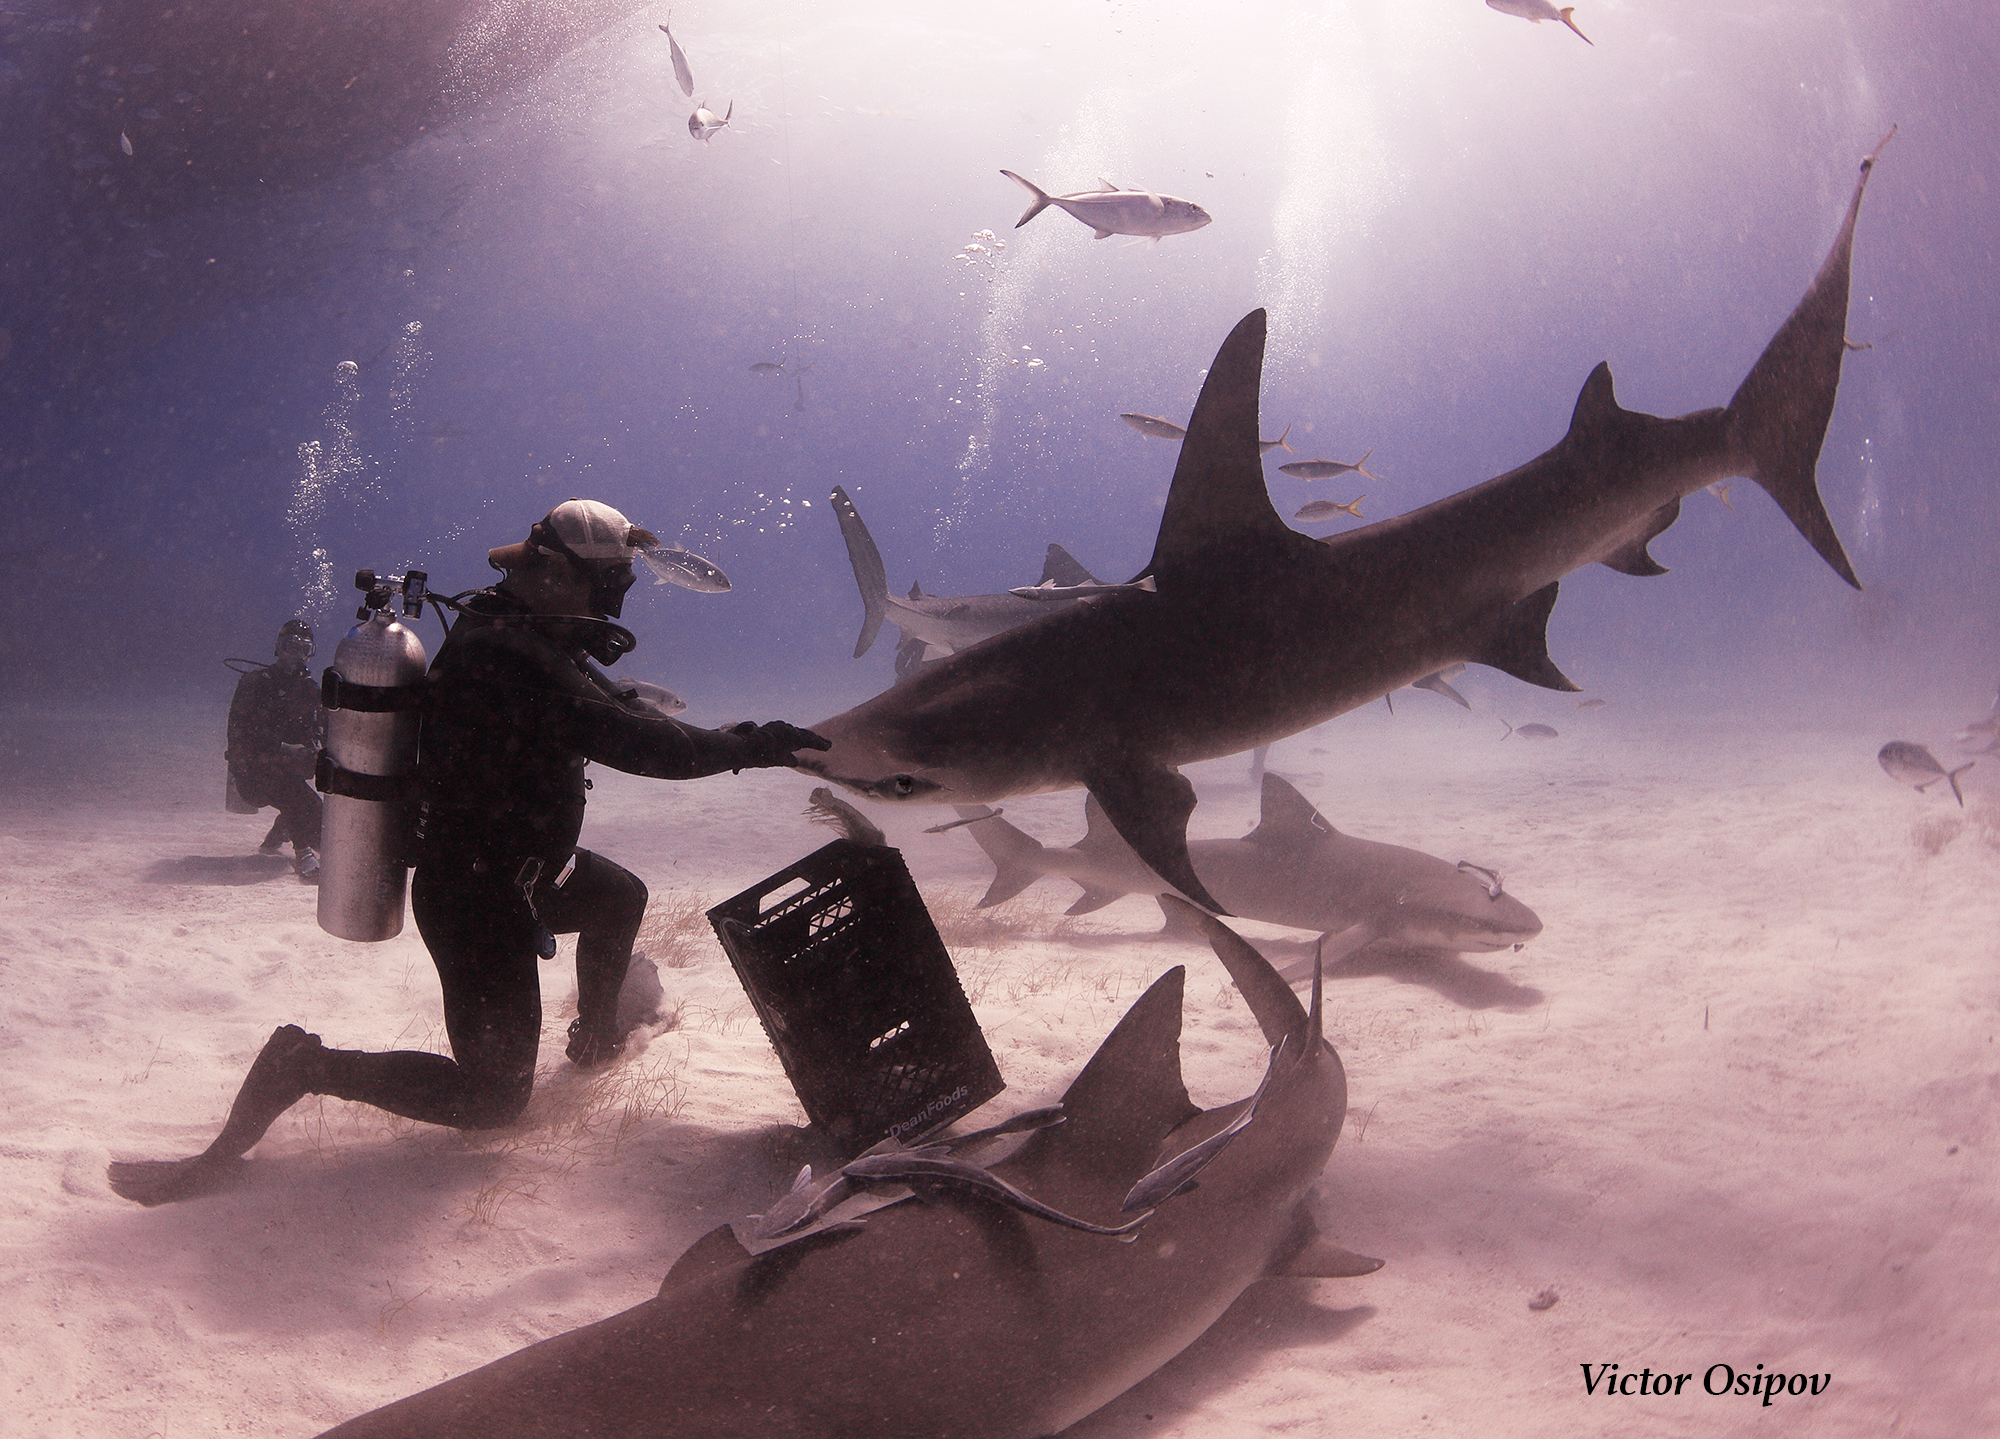 Patches the Great Hammerhead. Image by Victor Osipov